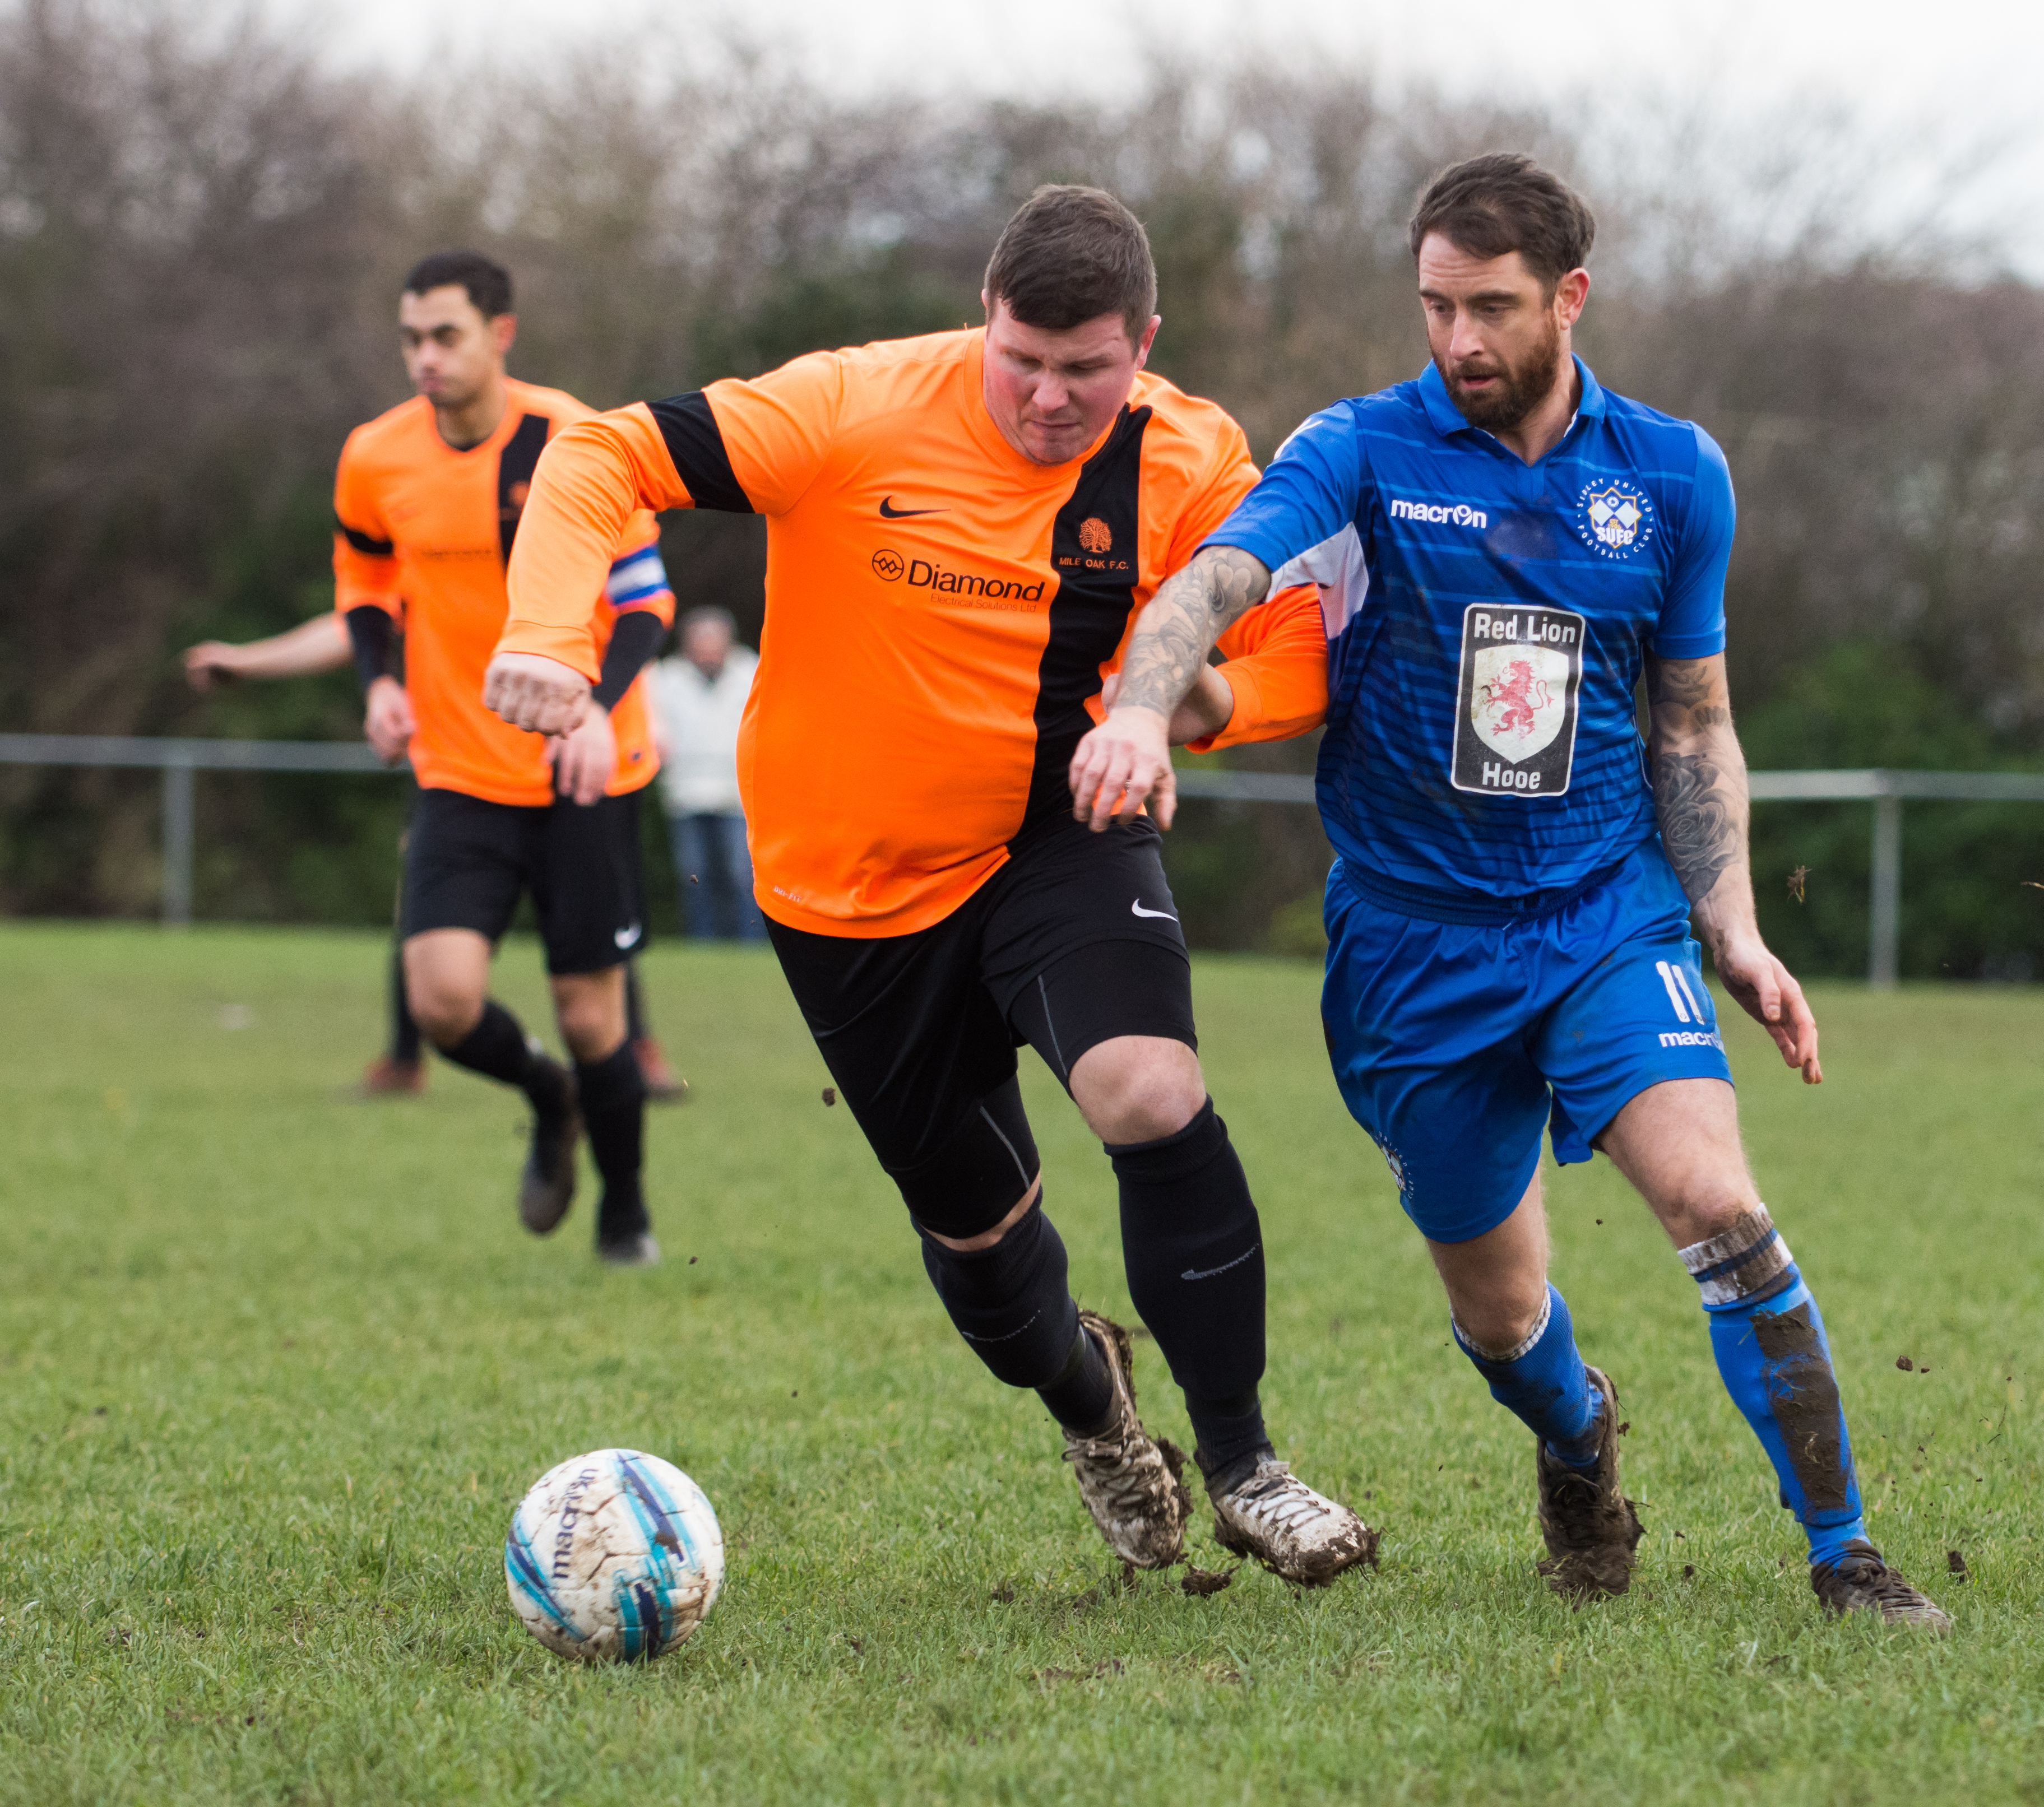 Mile Oak Res vs Sidley United 09.12.17 07